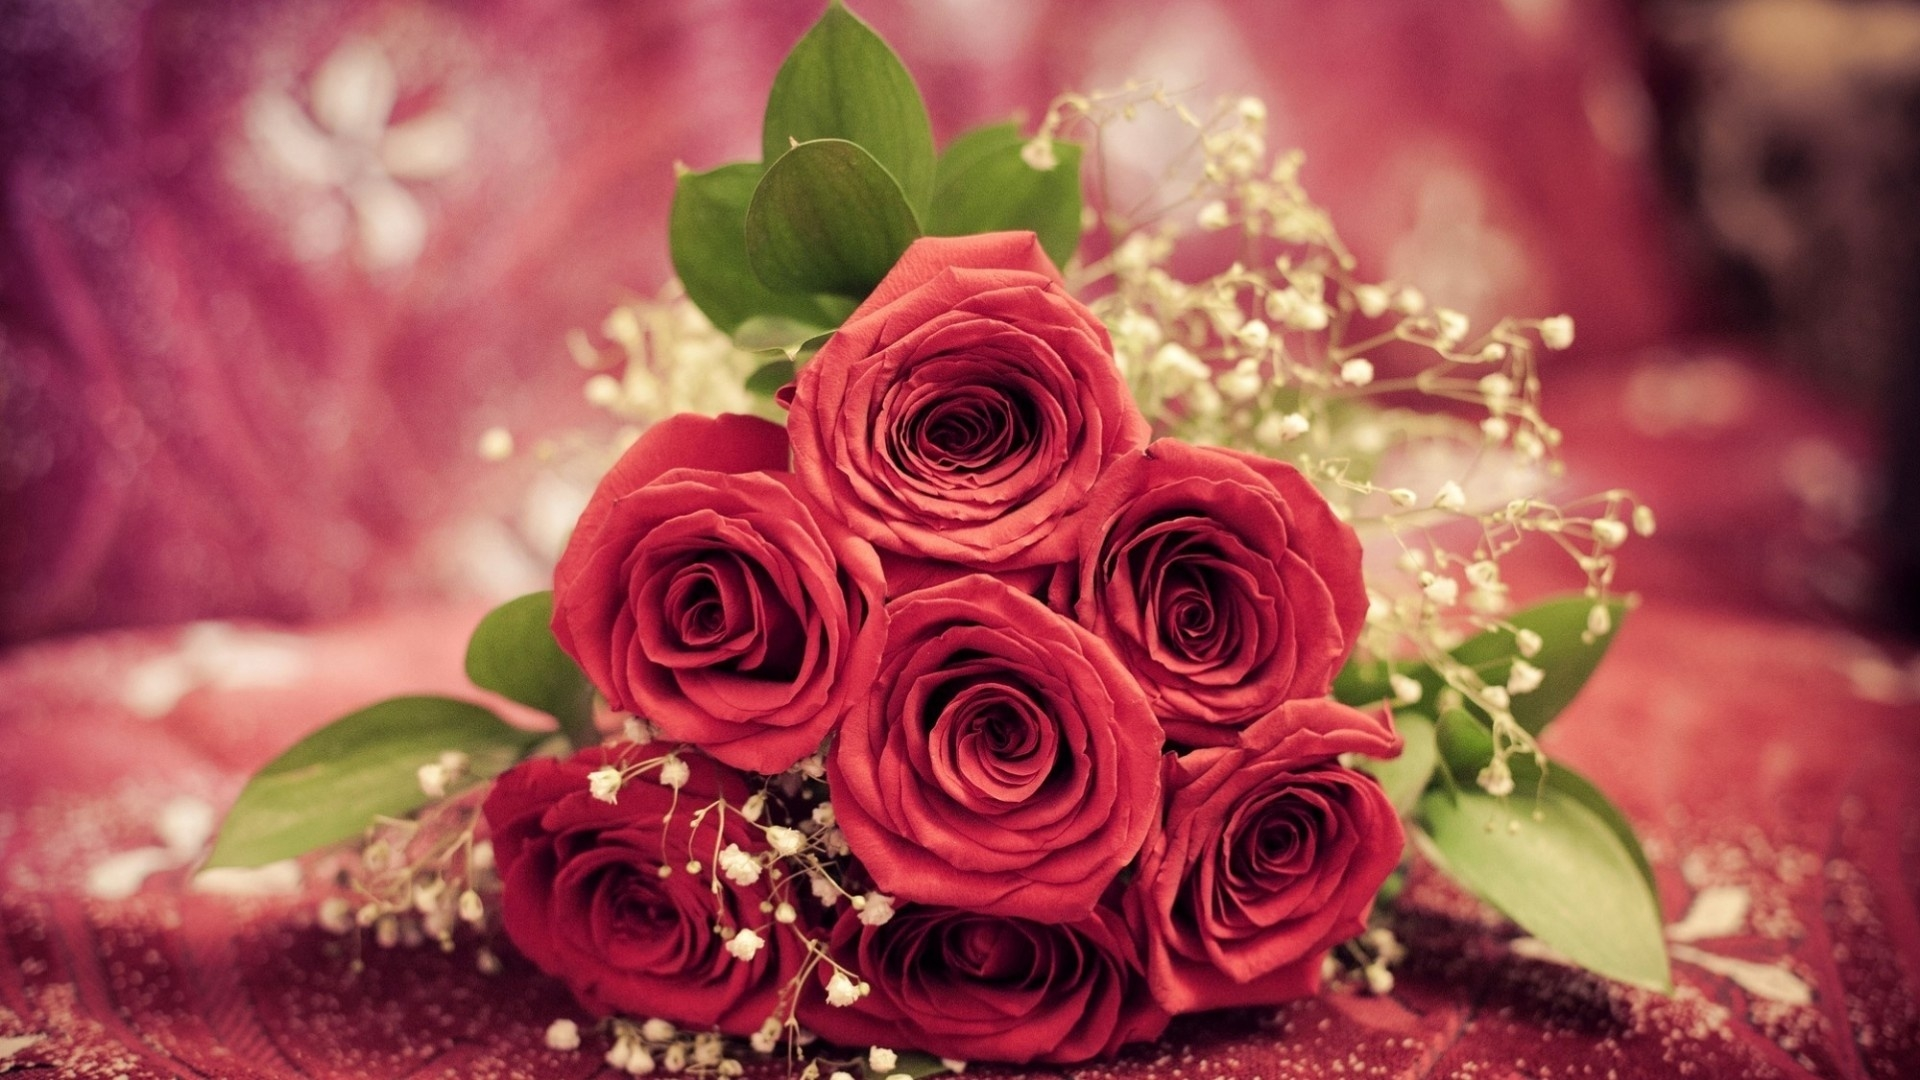 Roses bunch wallpaper high definition high quality - Bunch of roses hd images ...